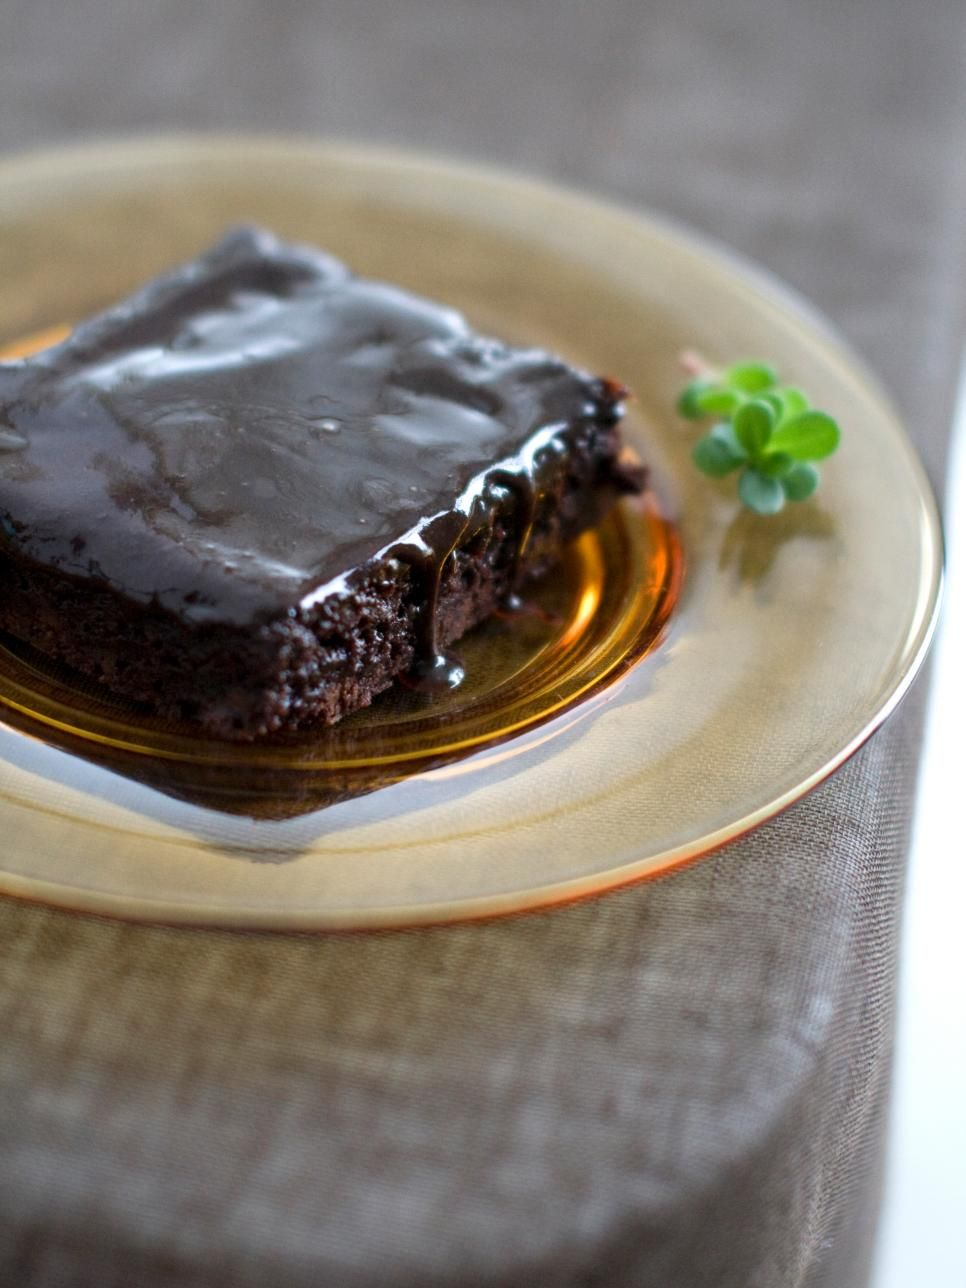 Ideas For A Potluck Dinner Party Part - 38: Dessert Is A Fun Item To Bring To A Potluck Dinner, And While It Can